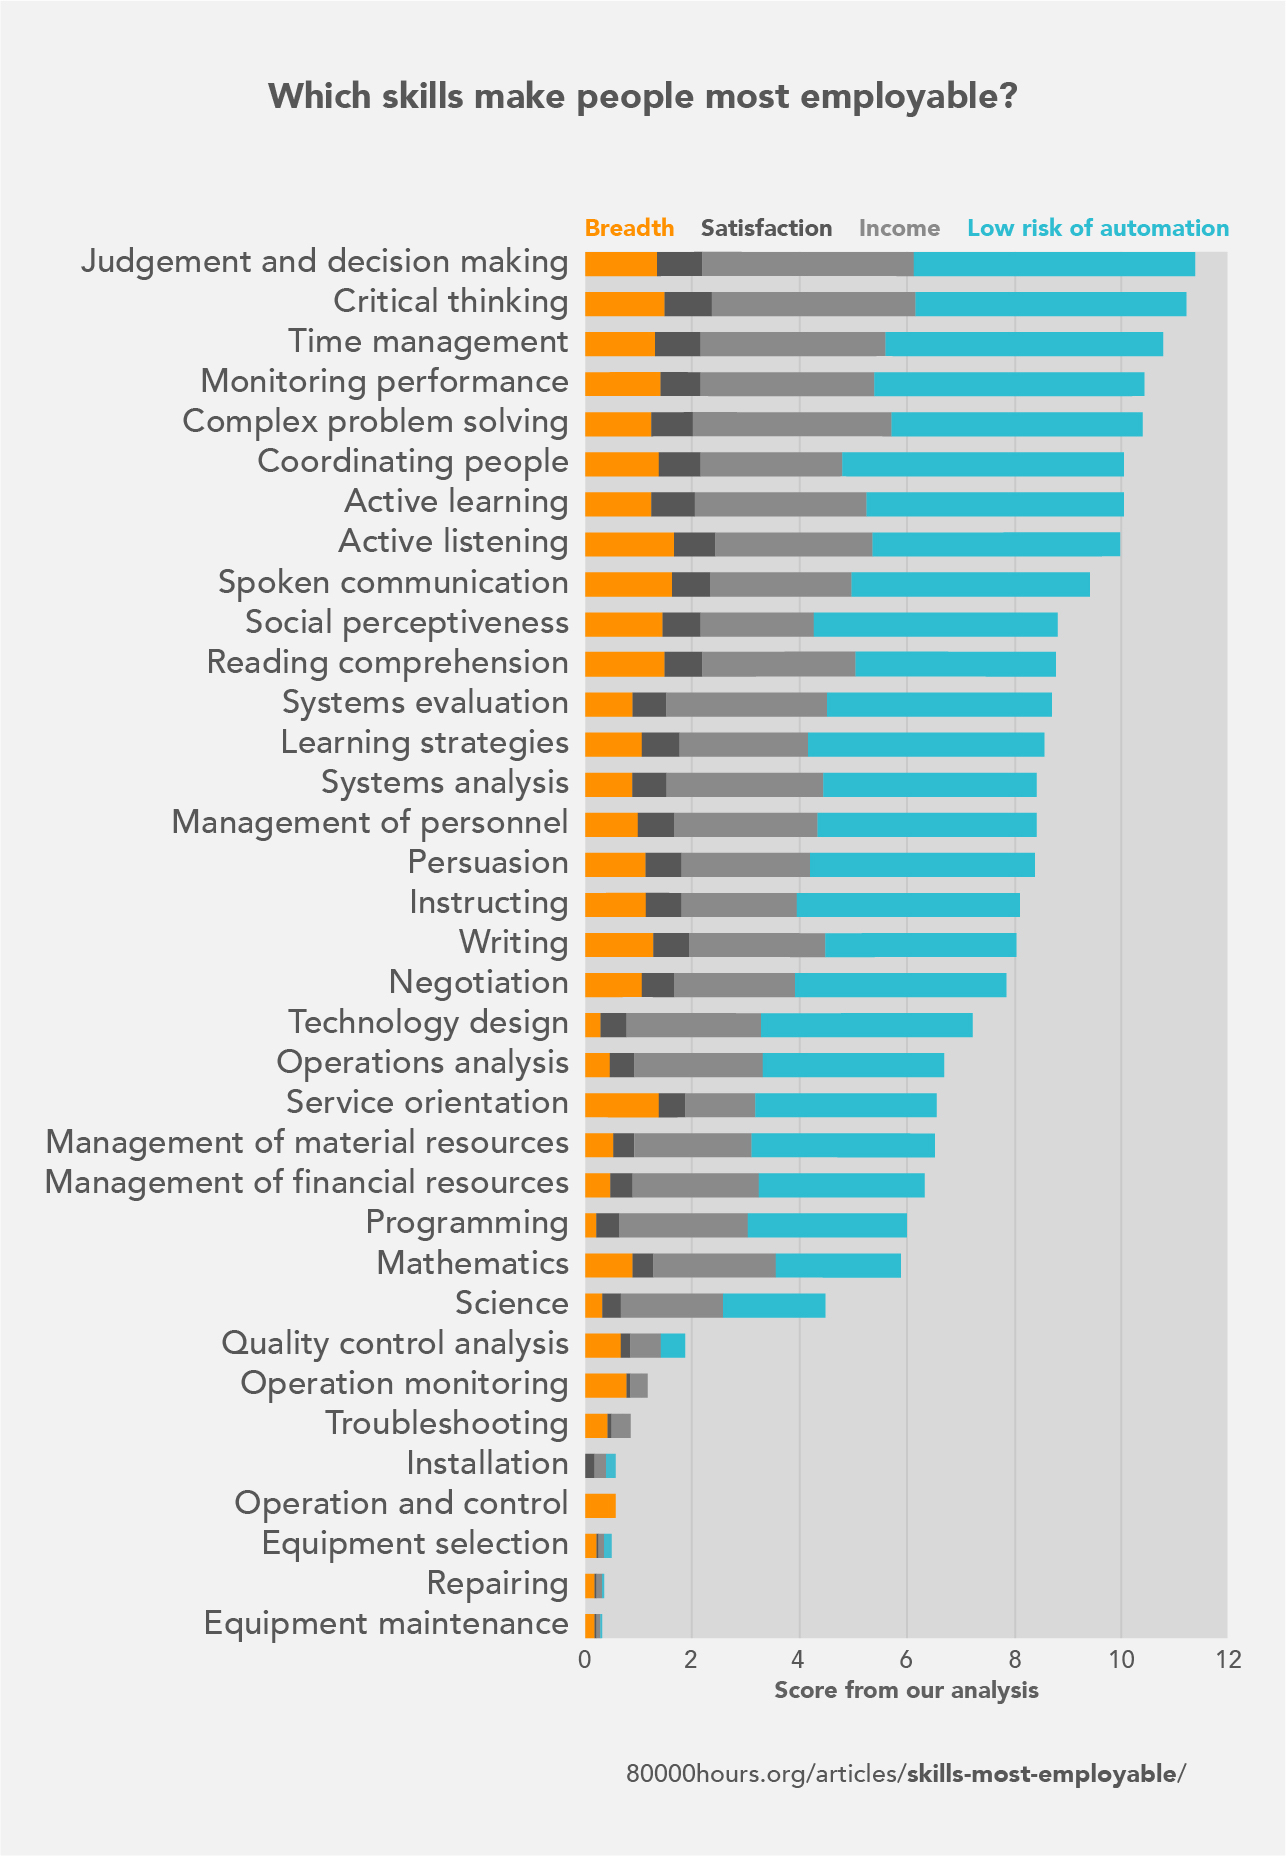 Which skills make people most employable?